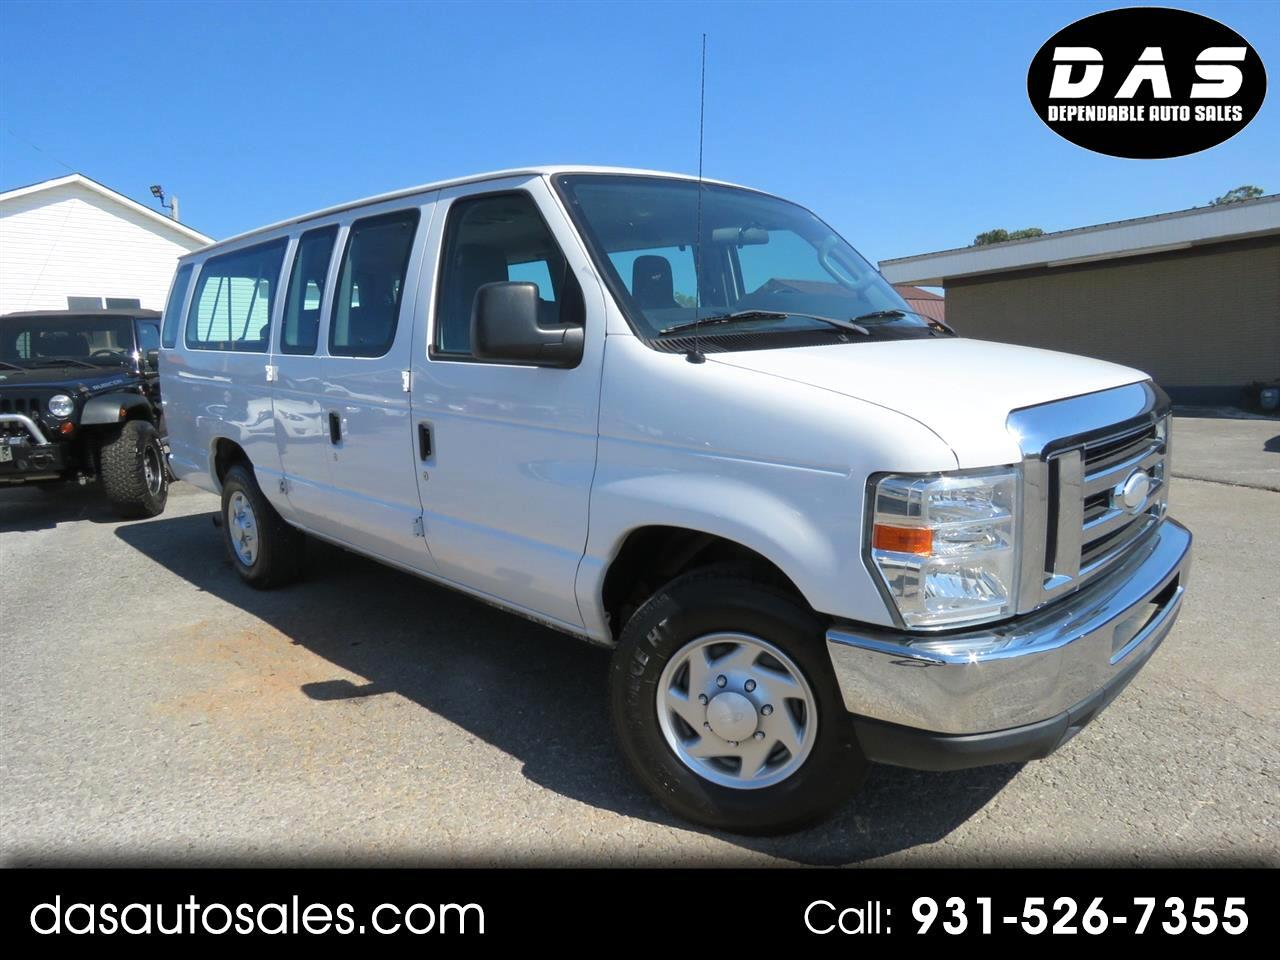 Ford Econoline Wagon E-350 Super Duty Ext XLT 2014